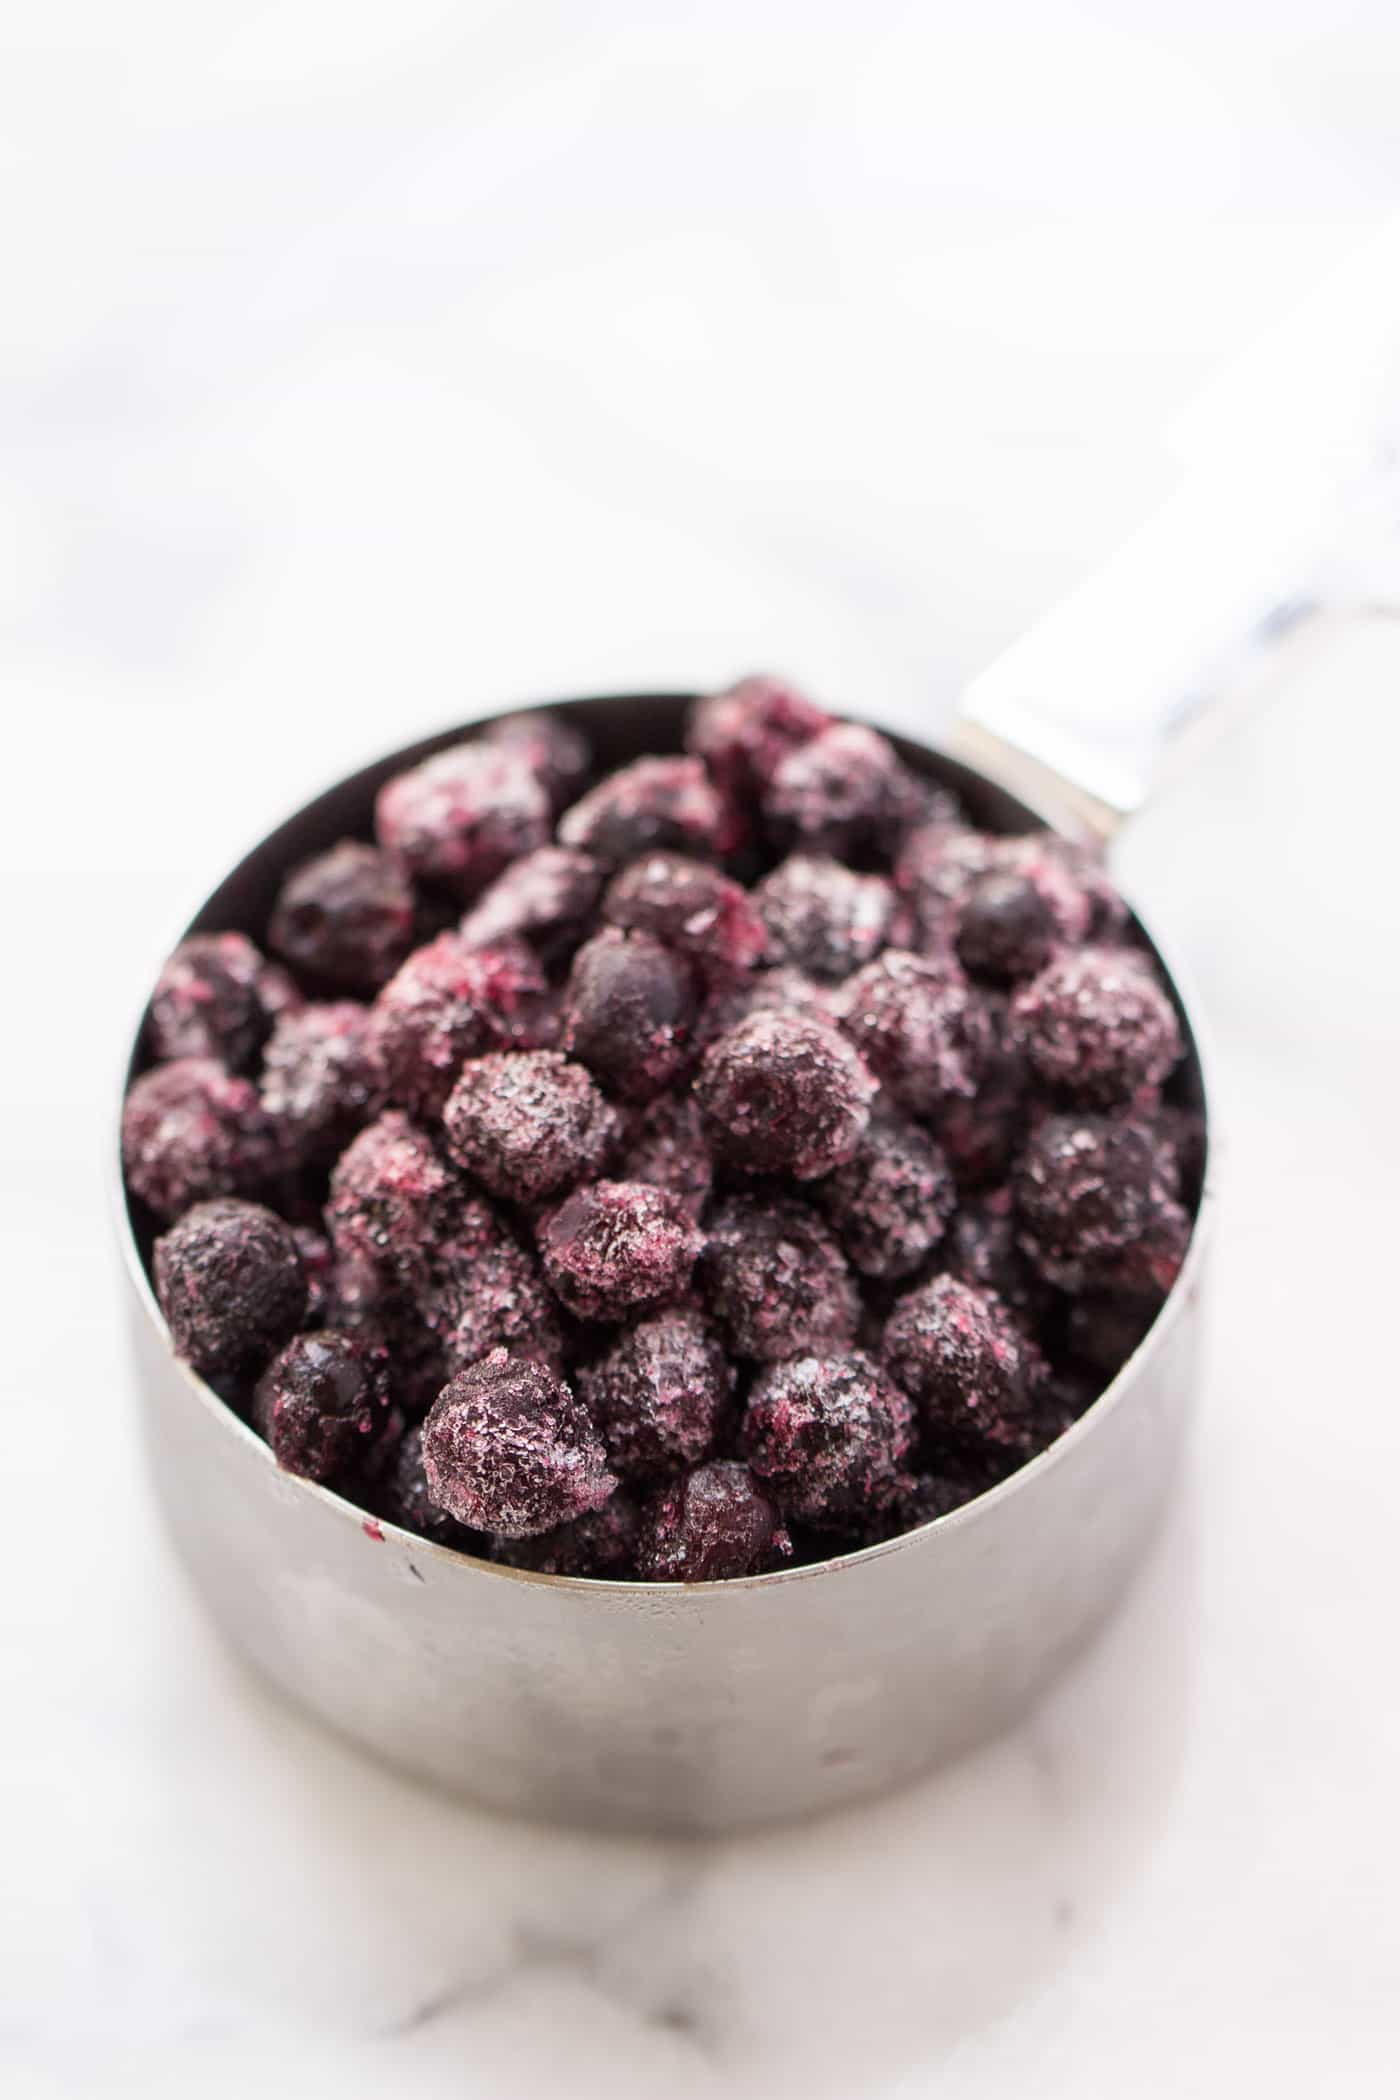 Wild blueberries vs. cultivated blueberries...which are better?